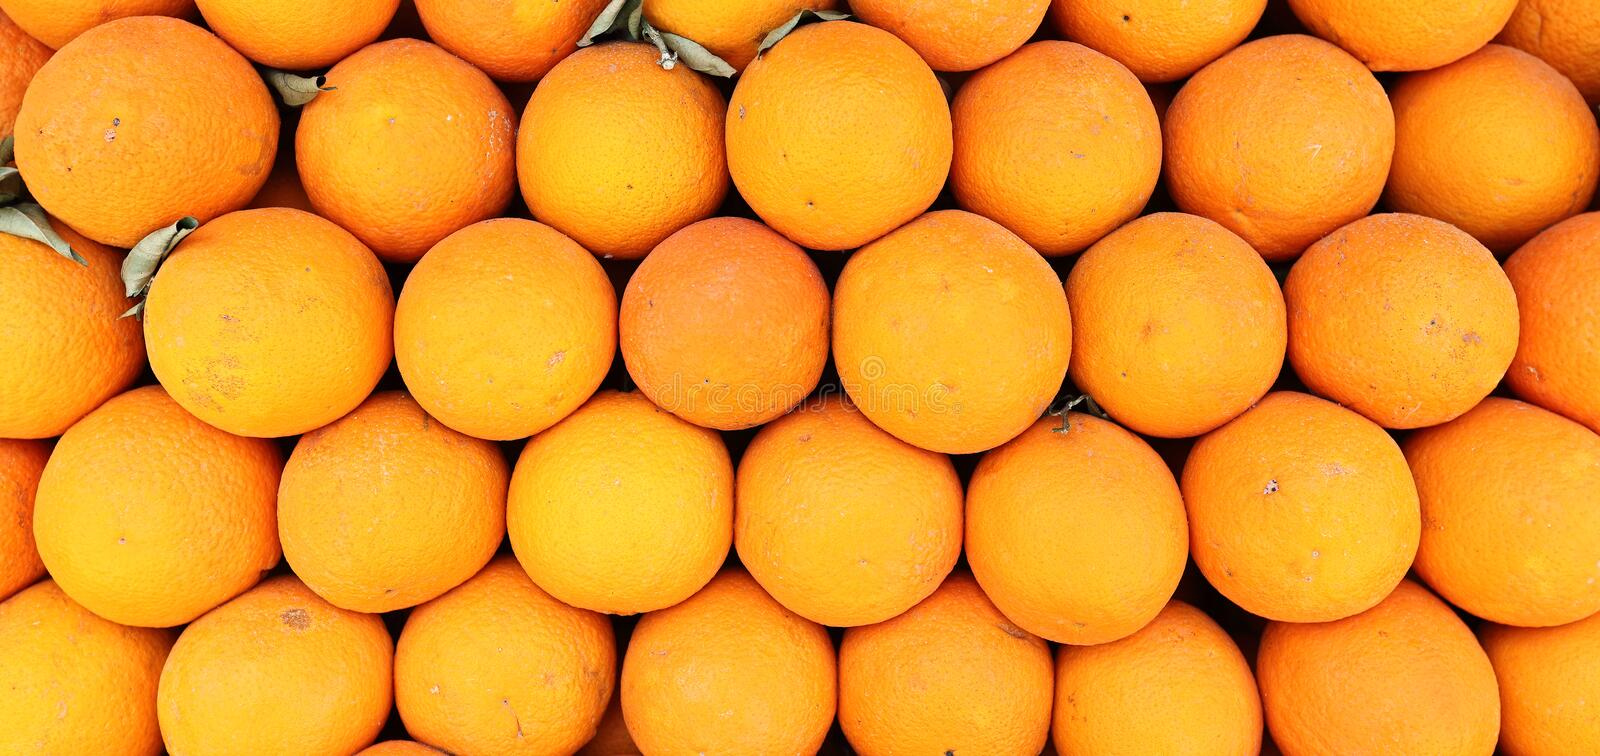 Full Frame Food Background: Oranges royalty free stock photos